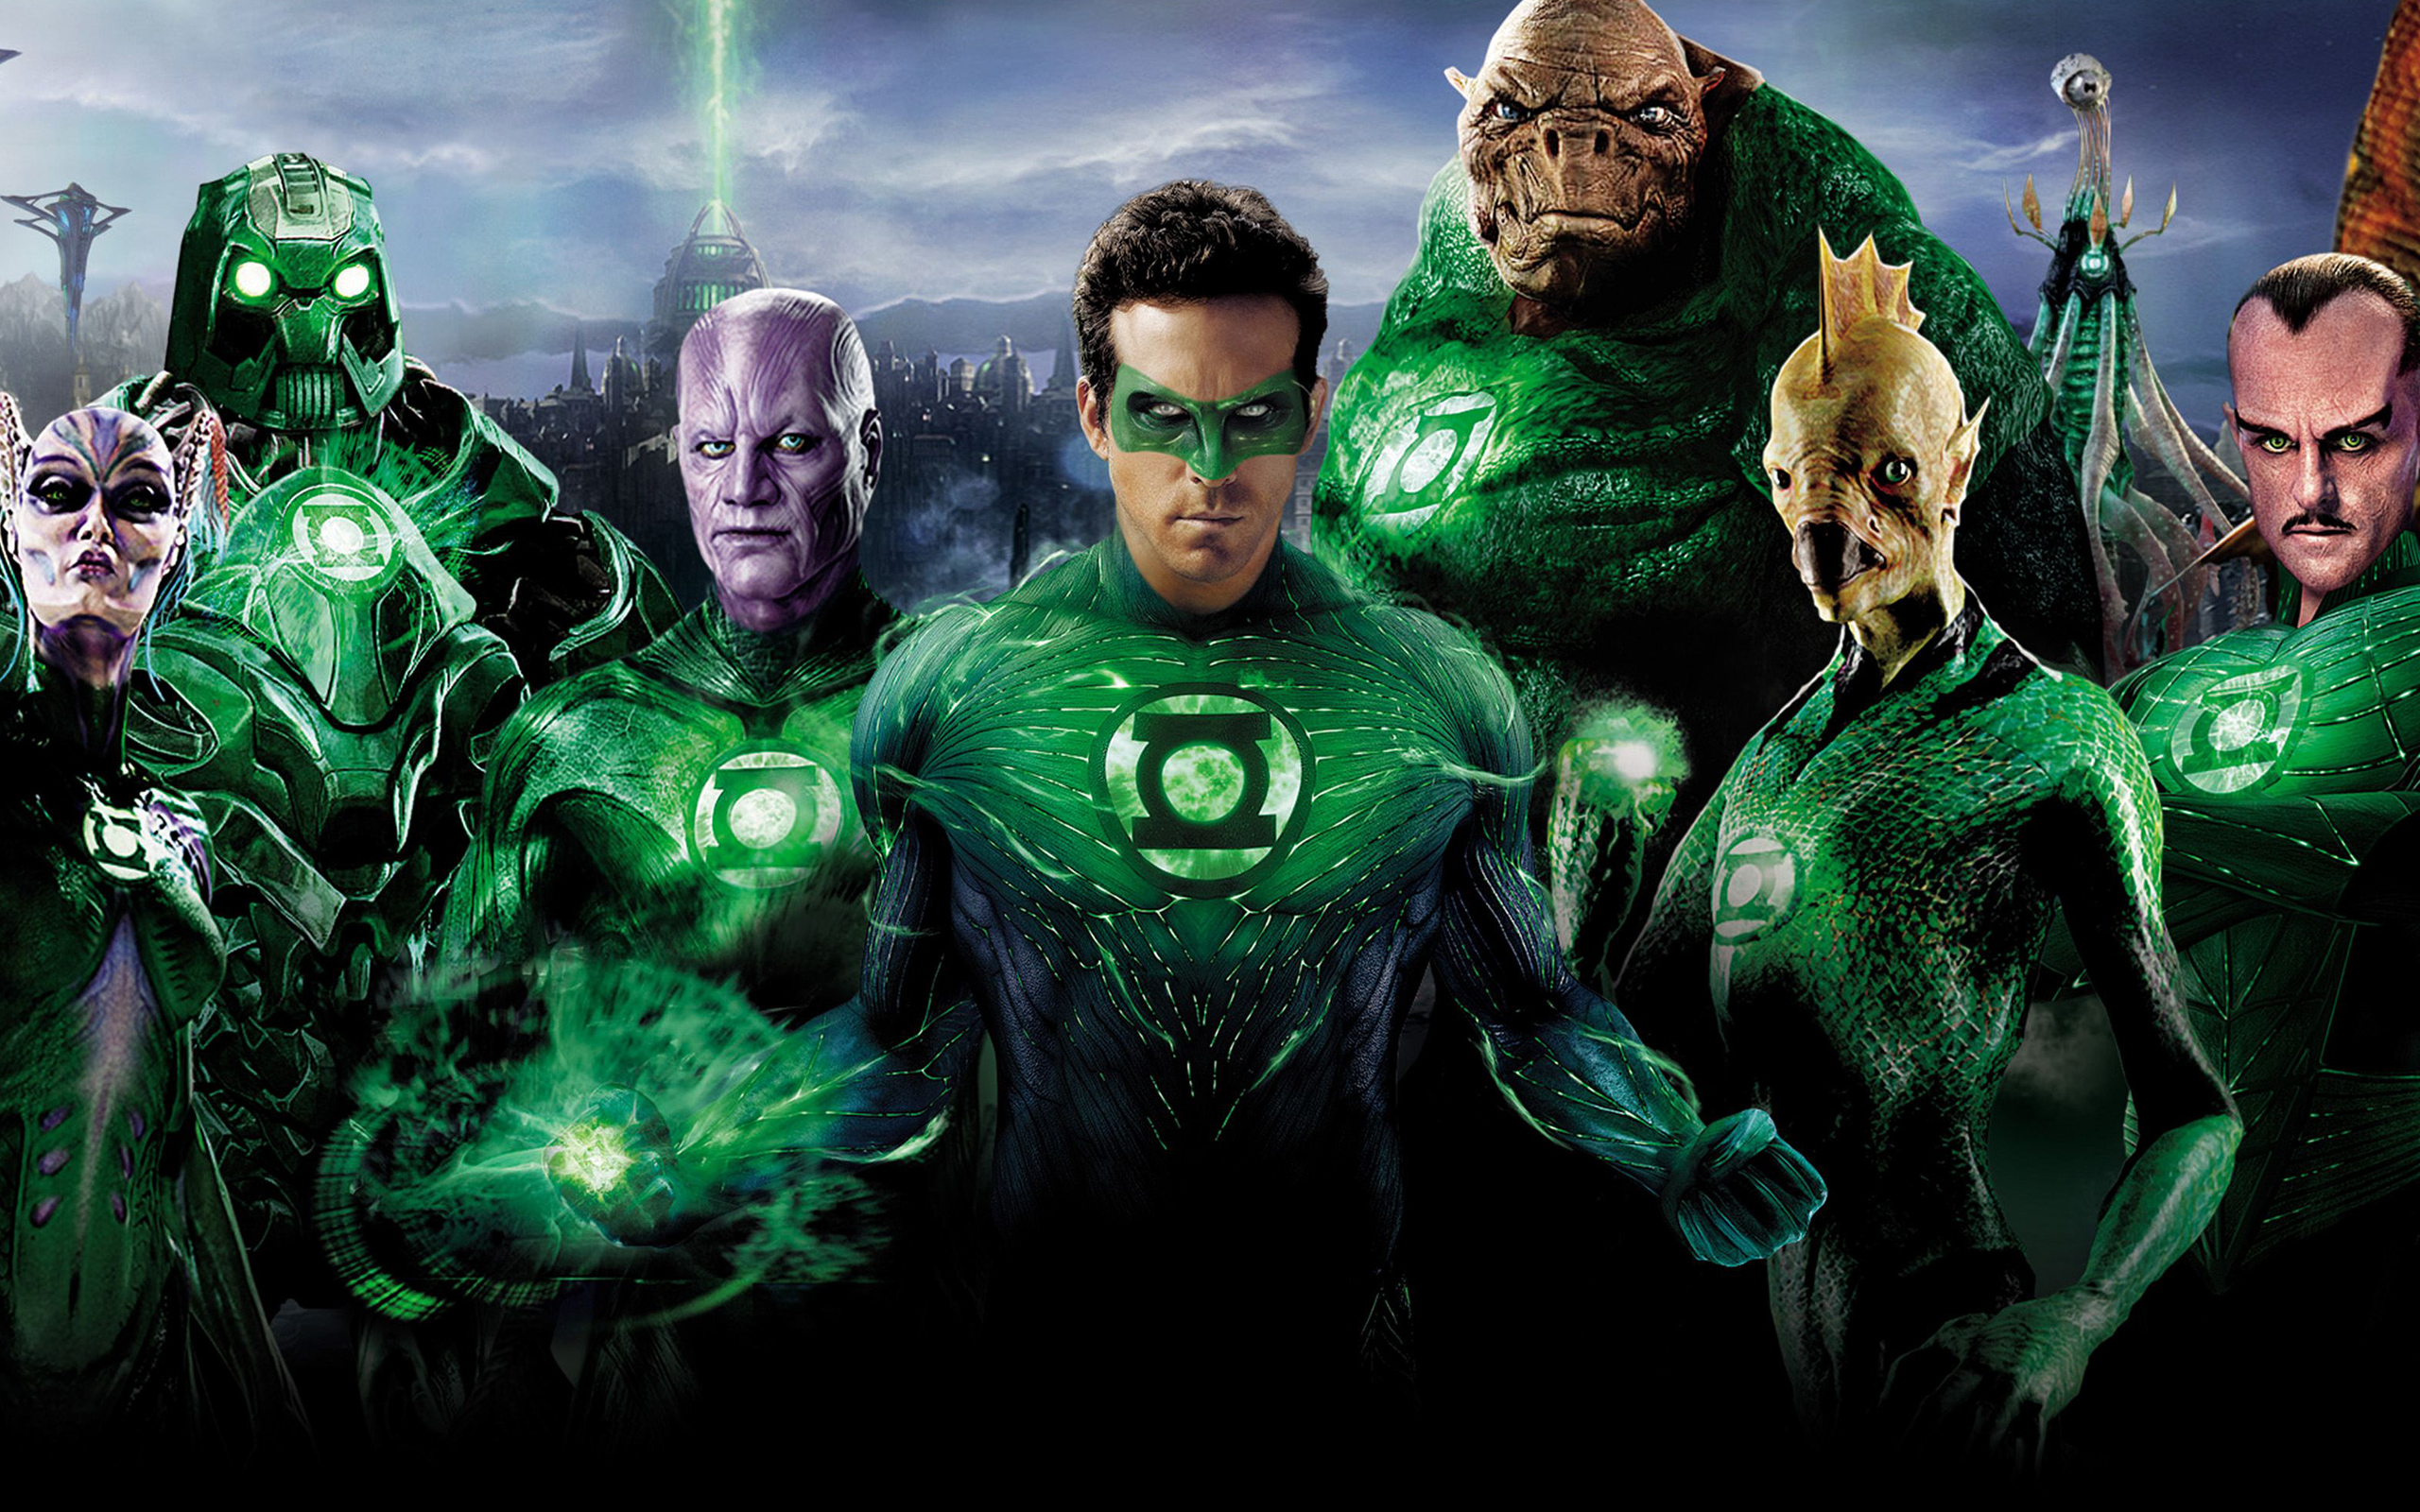 Green Lantern Superheroes Wallpapers HD Wallpapers 2560x1600